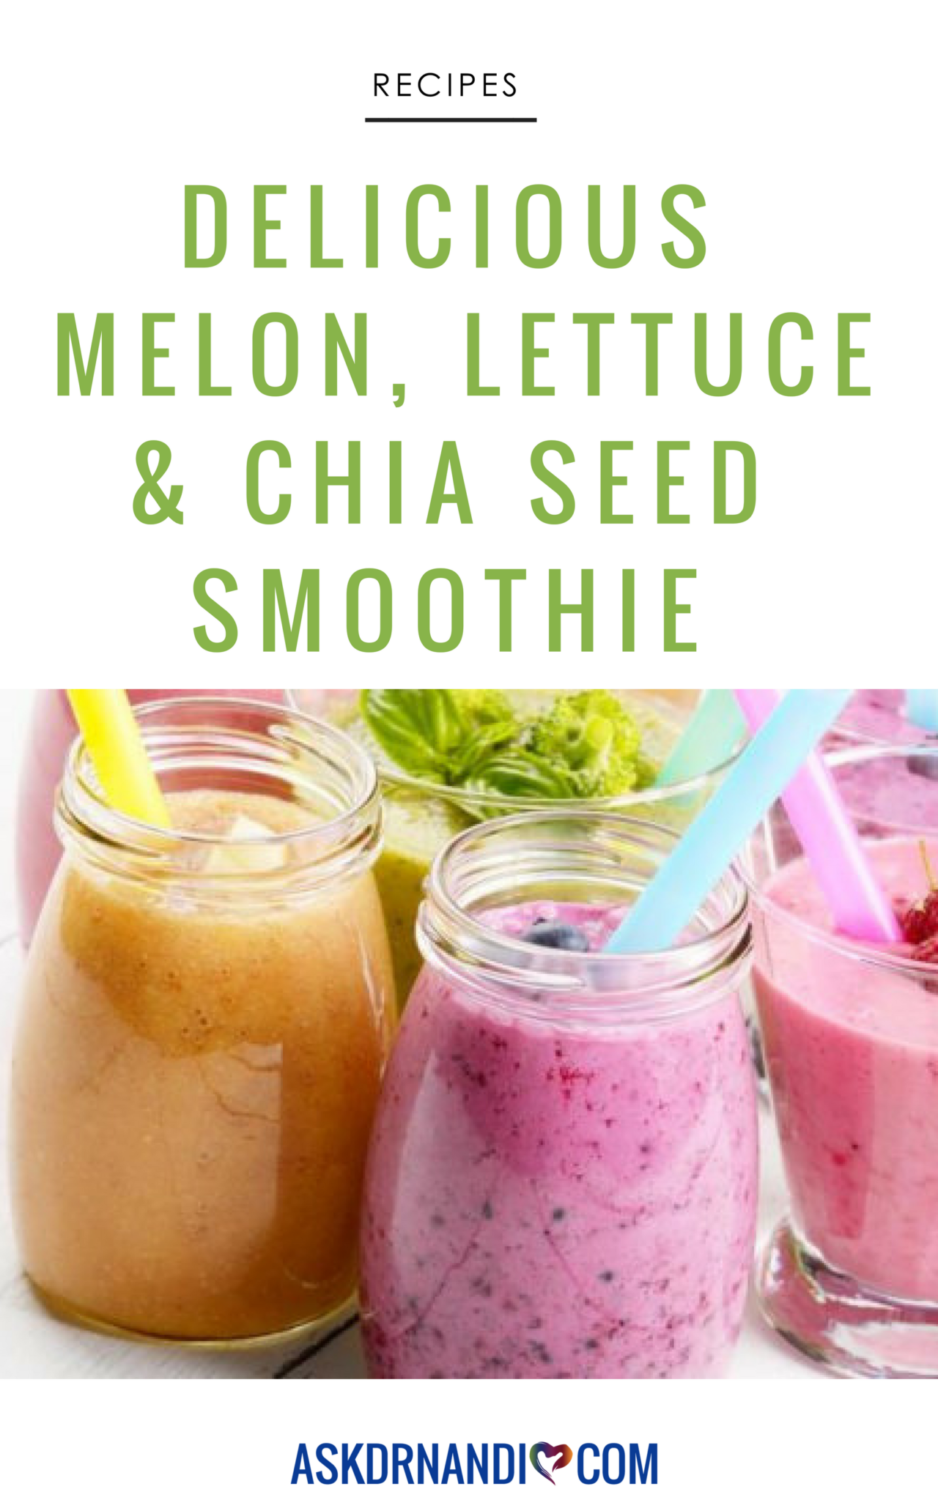 Melon, Lettuce & Chia Seed Smoothie